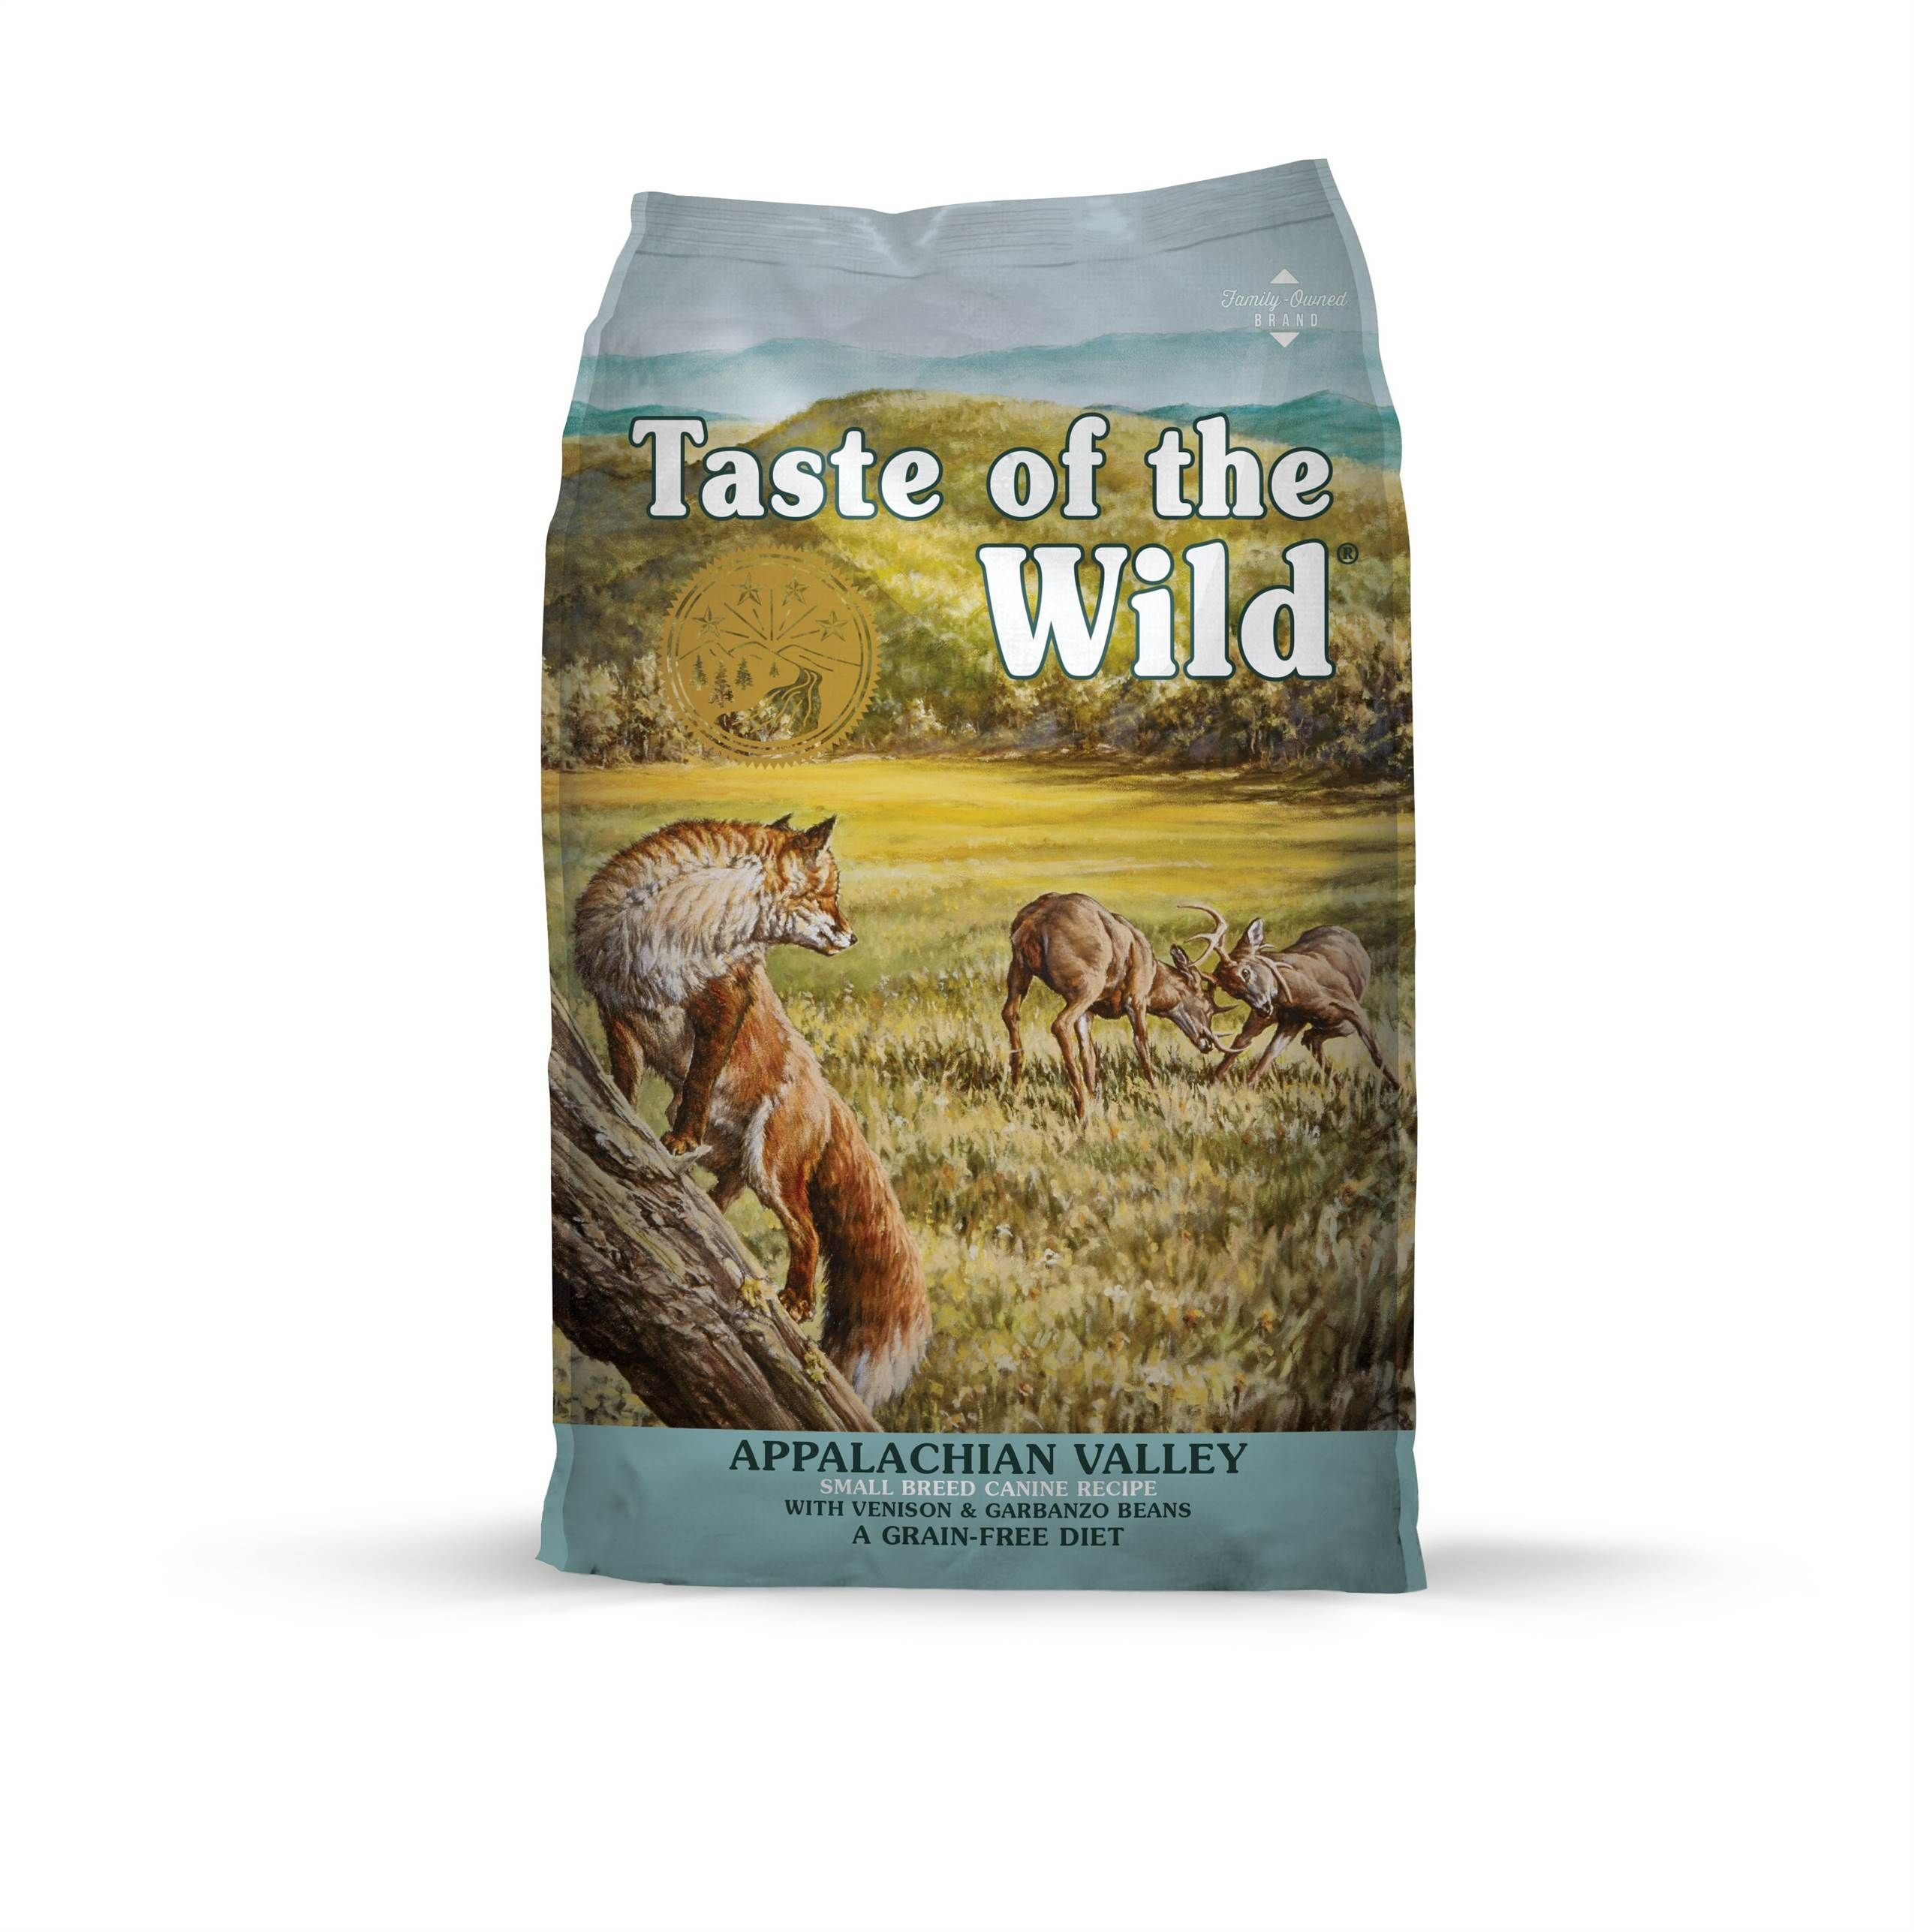 Taste of the Wild with Appalachian Valley Small Breed Venison and Garbanzo beans Formula Dry Dog Food 5lbs-30lbs 00017